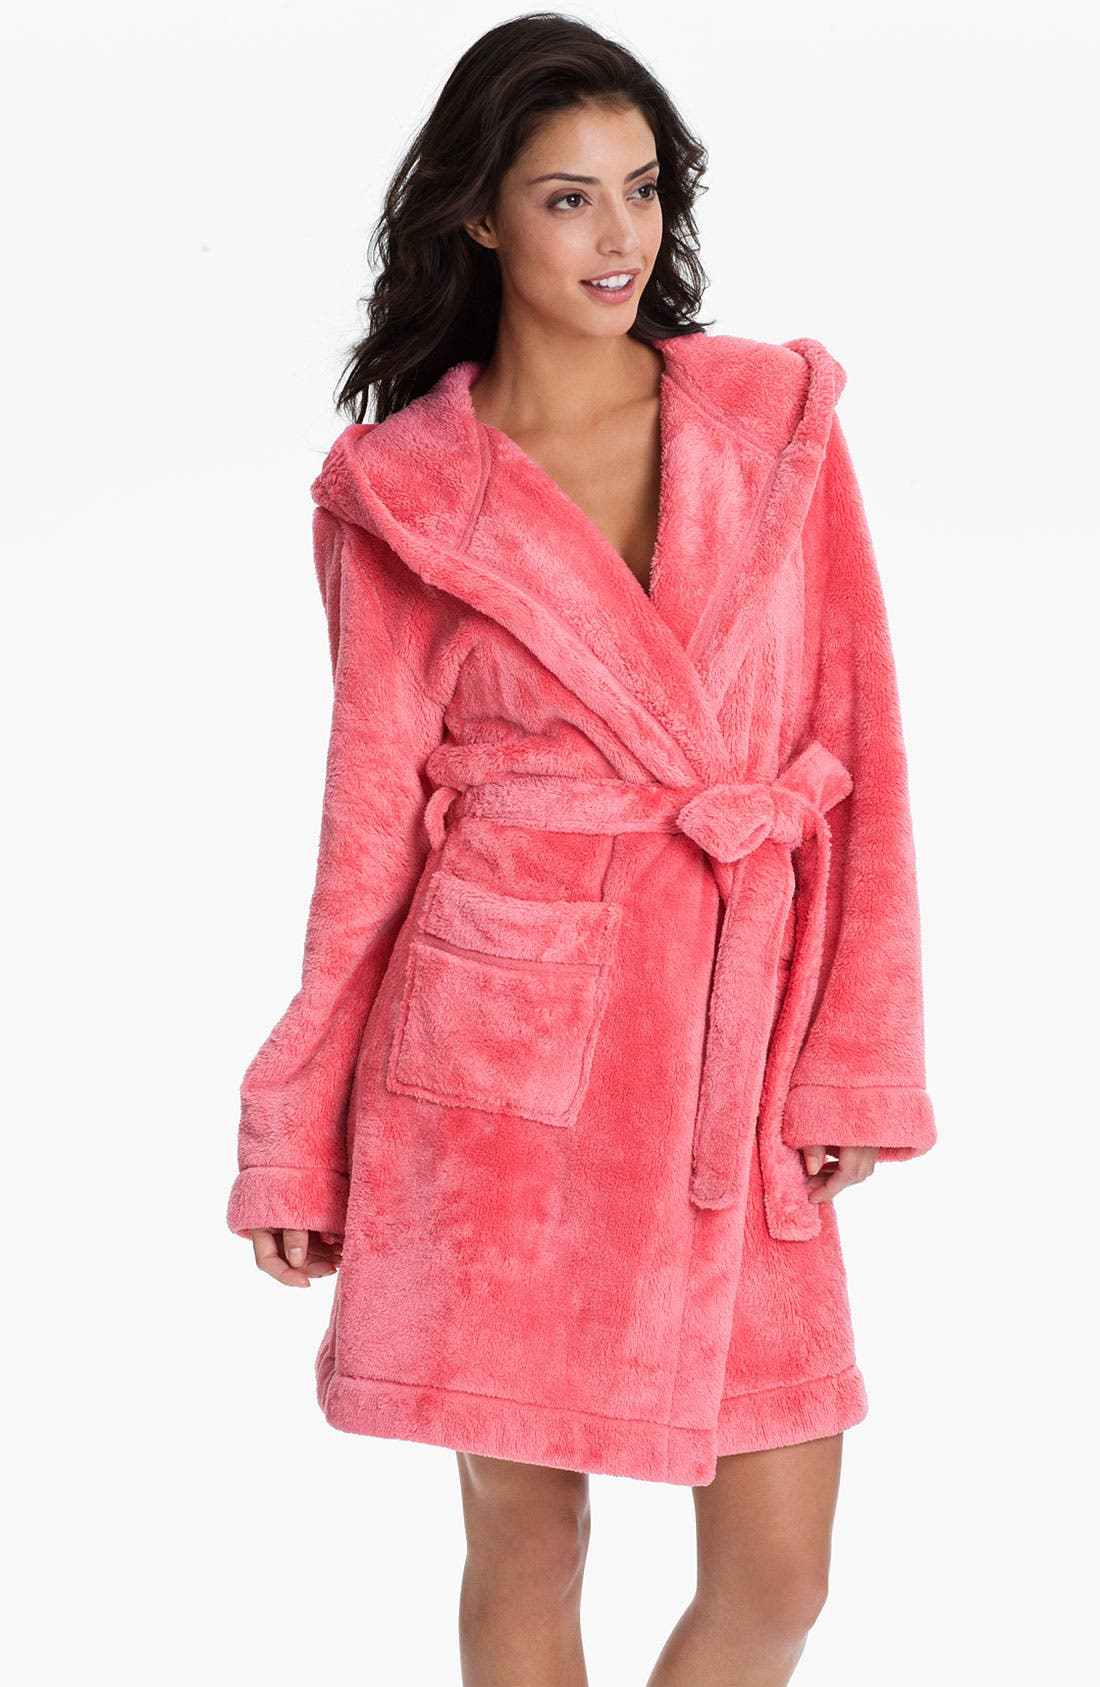 Alternate Image 1 Selected - Make + Model 'Teddy Plush' Robe